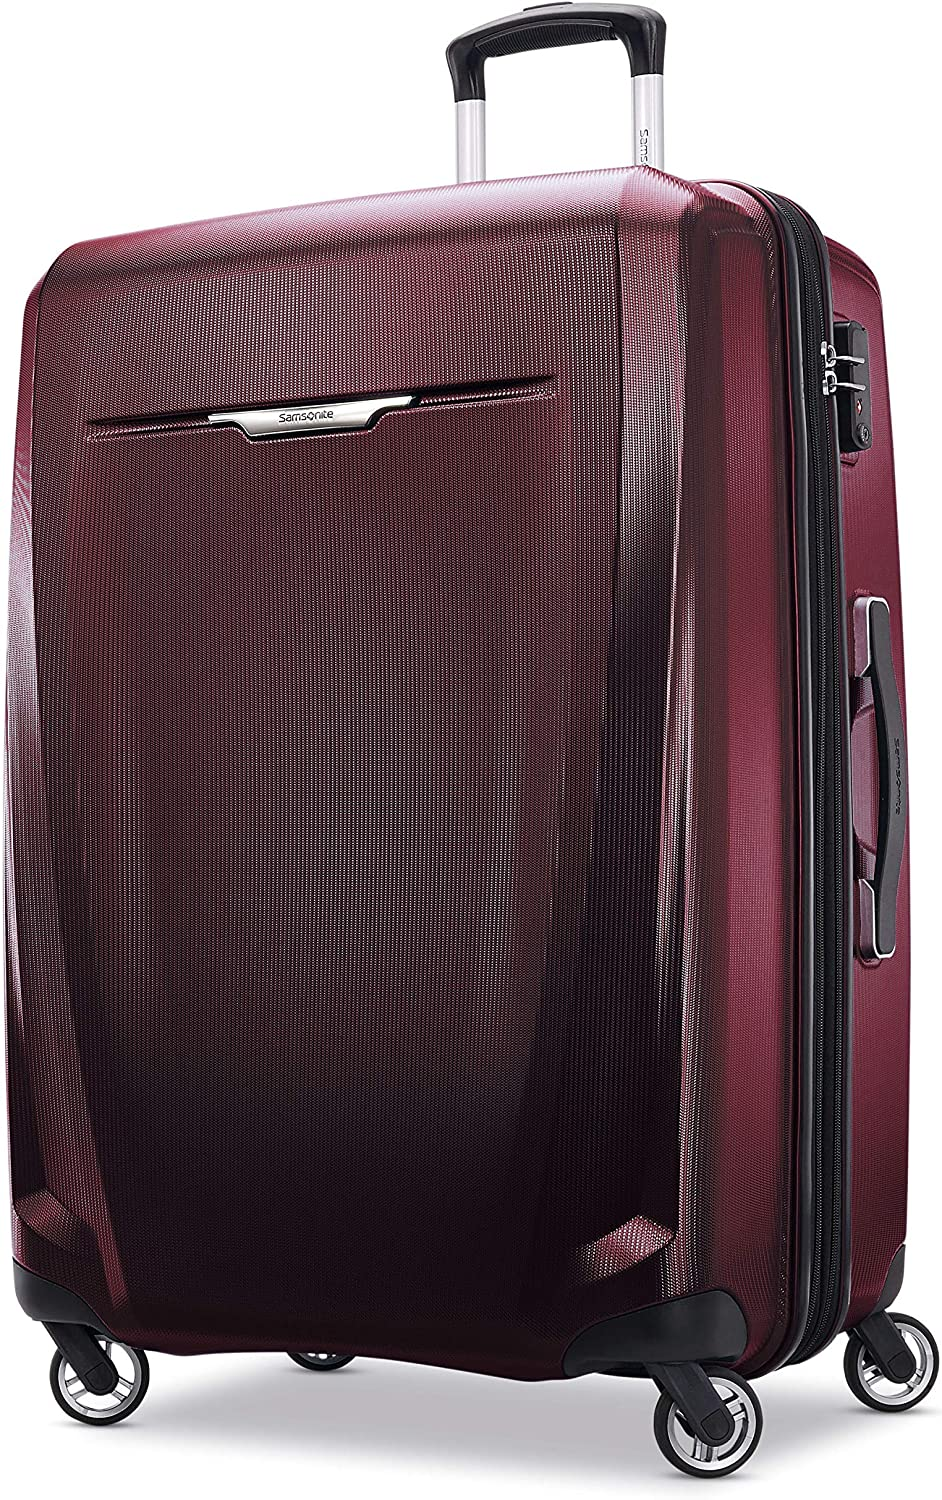 Samsonite Winfield 3 DLX Hardside Expandable Luggage with Spinners Black